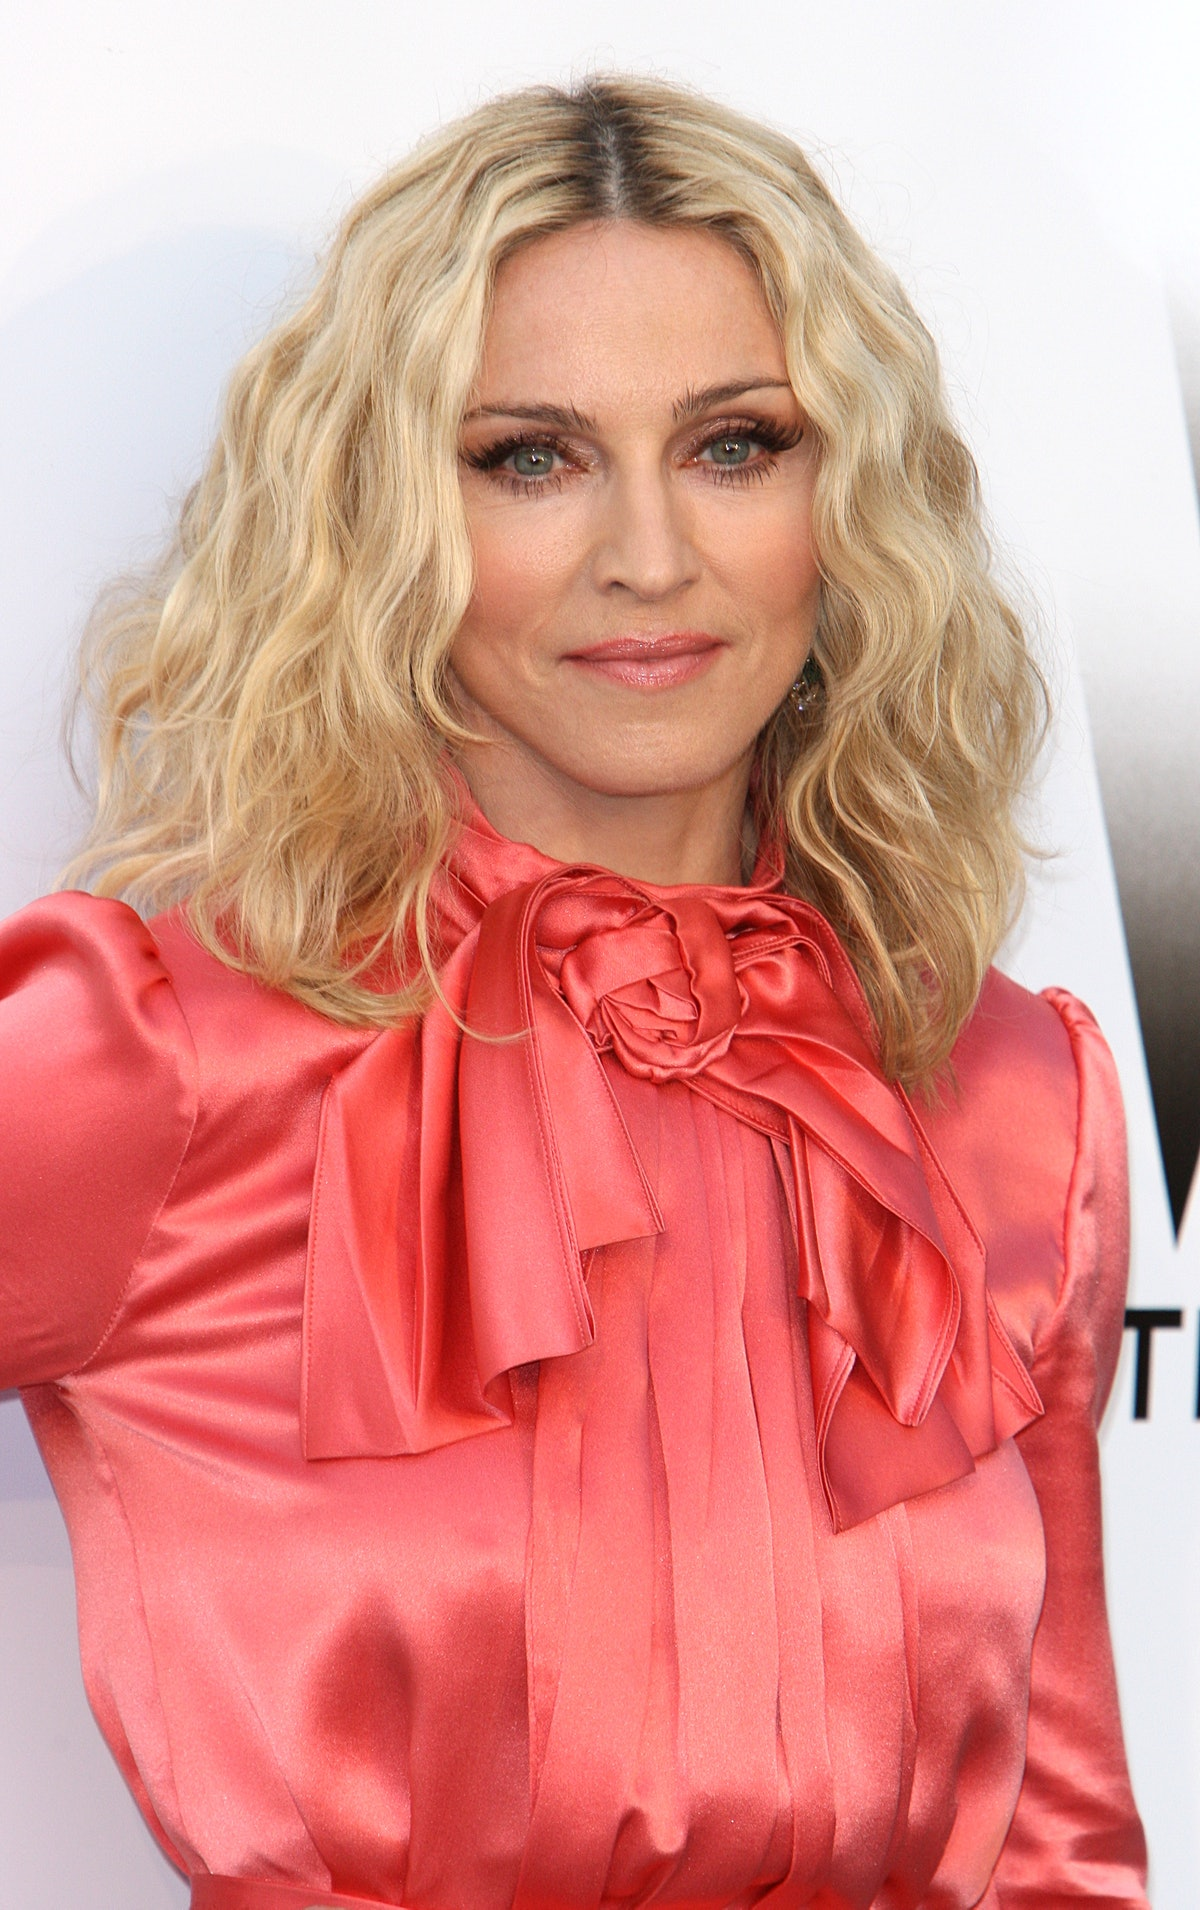 Madonna arrives for the amfAR Gala during the 61st Cannes Film Festival in Cannes, France.   (Photo ...